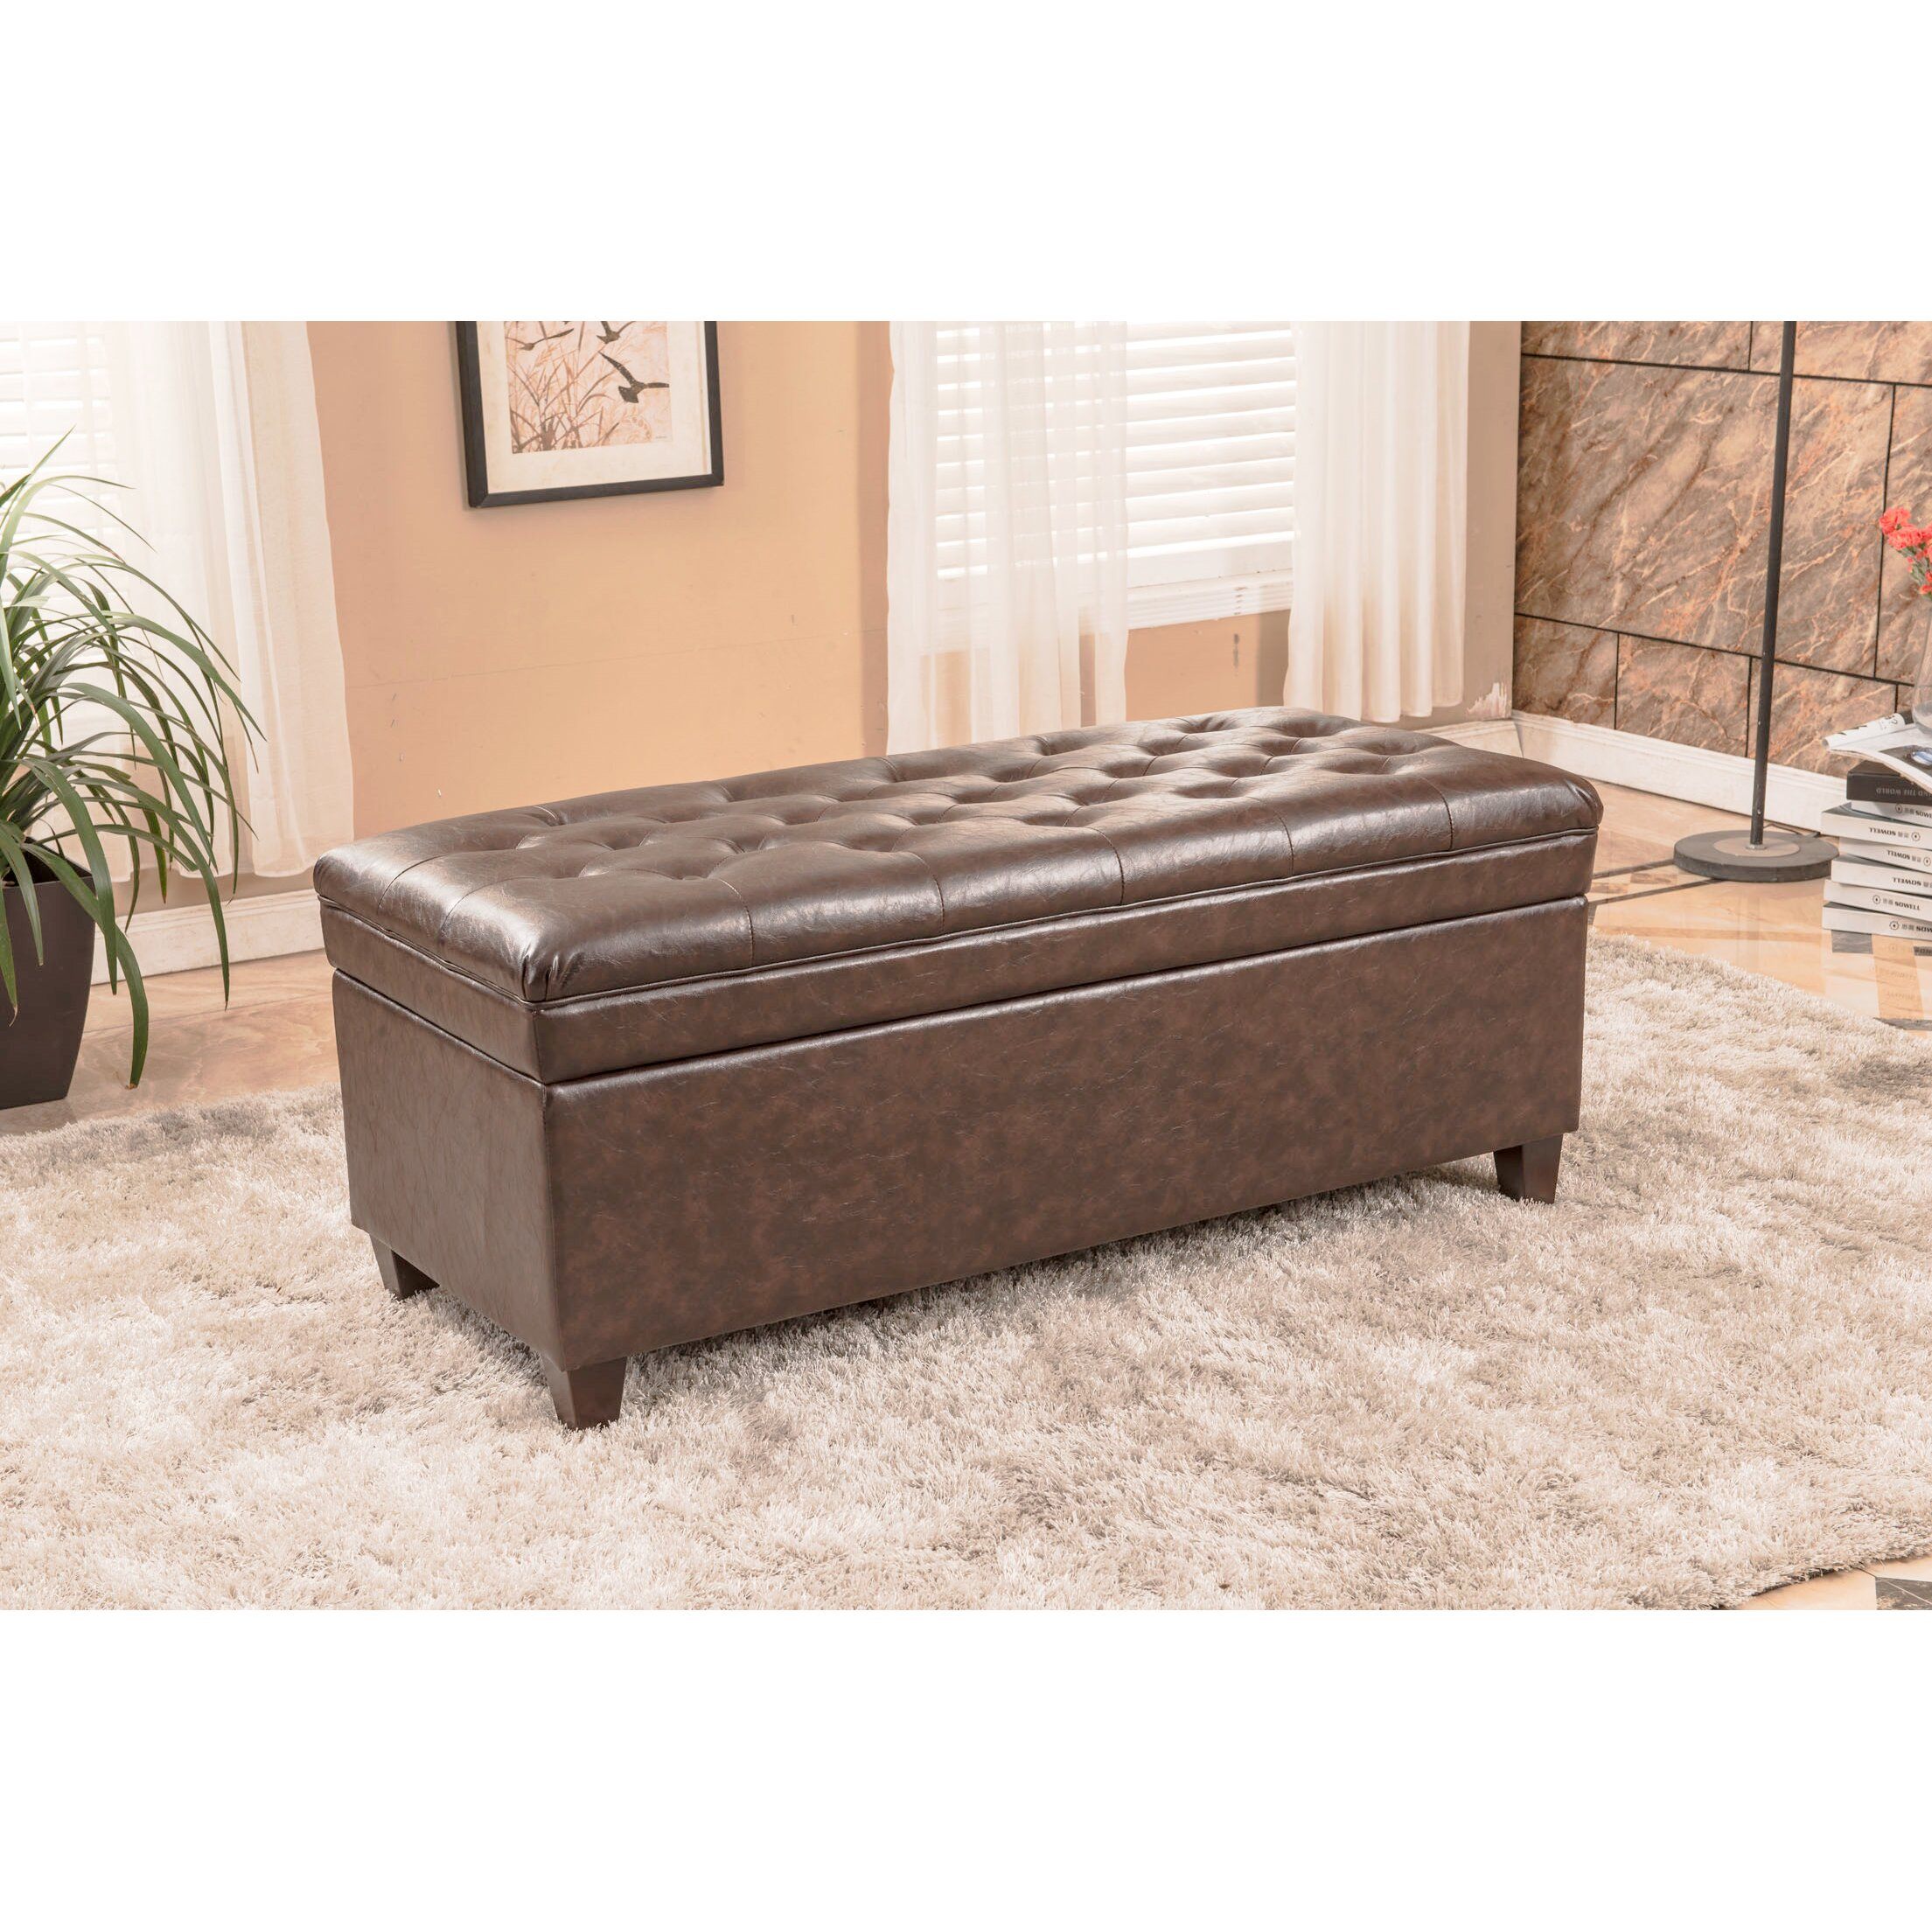 Bellasario collection upholstered storage bedroom bench reviews wayfair Bed bench storage